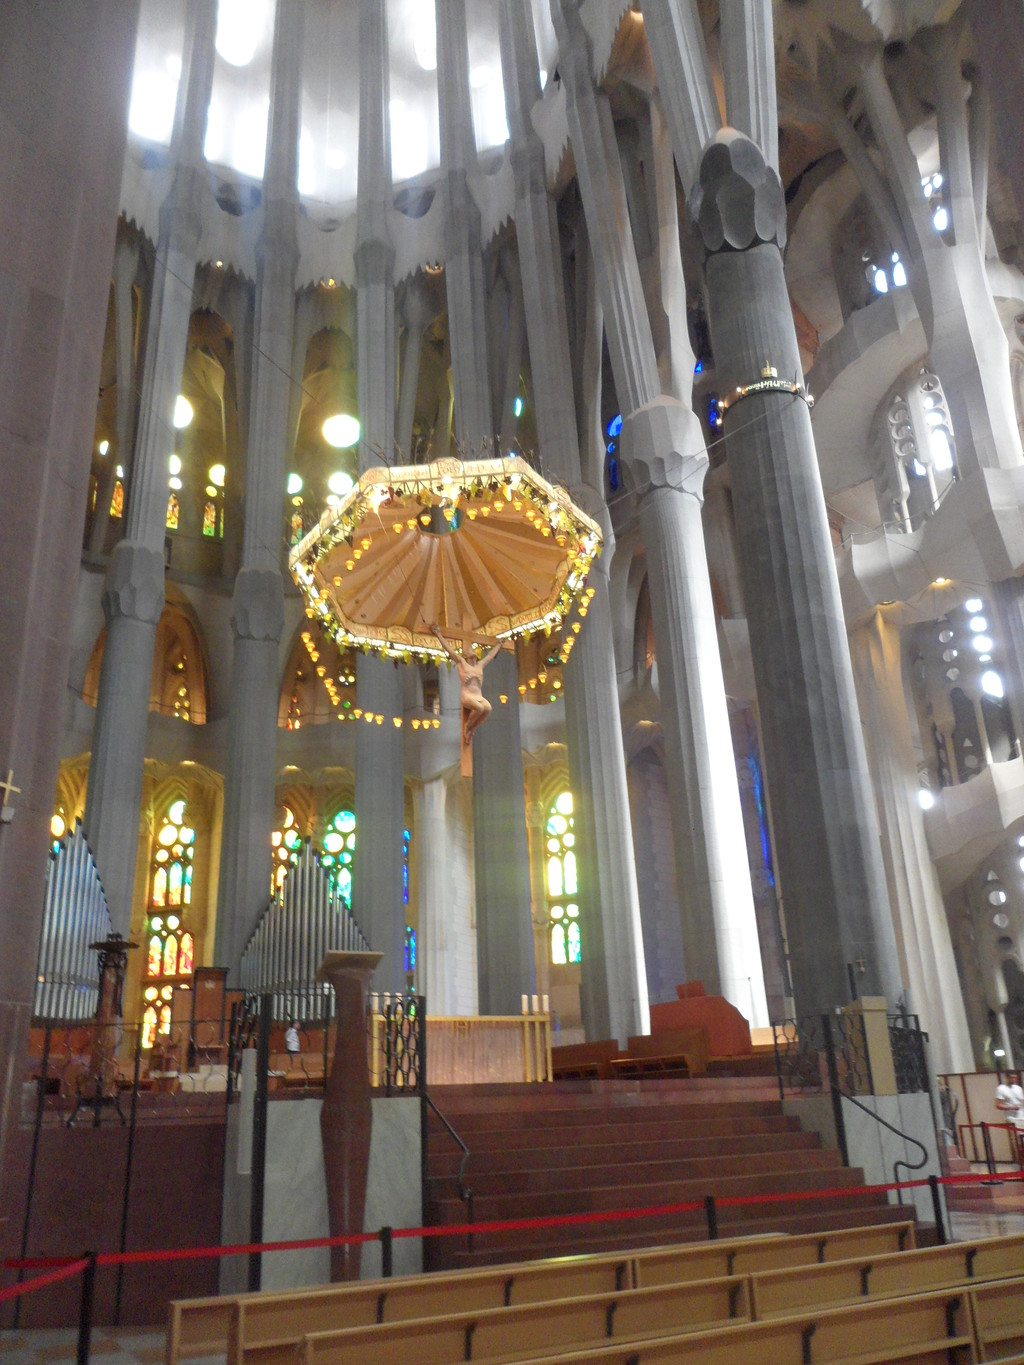 A visit to The Sagrada Familia